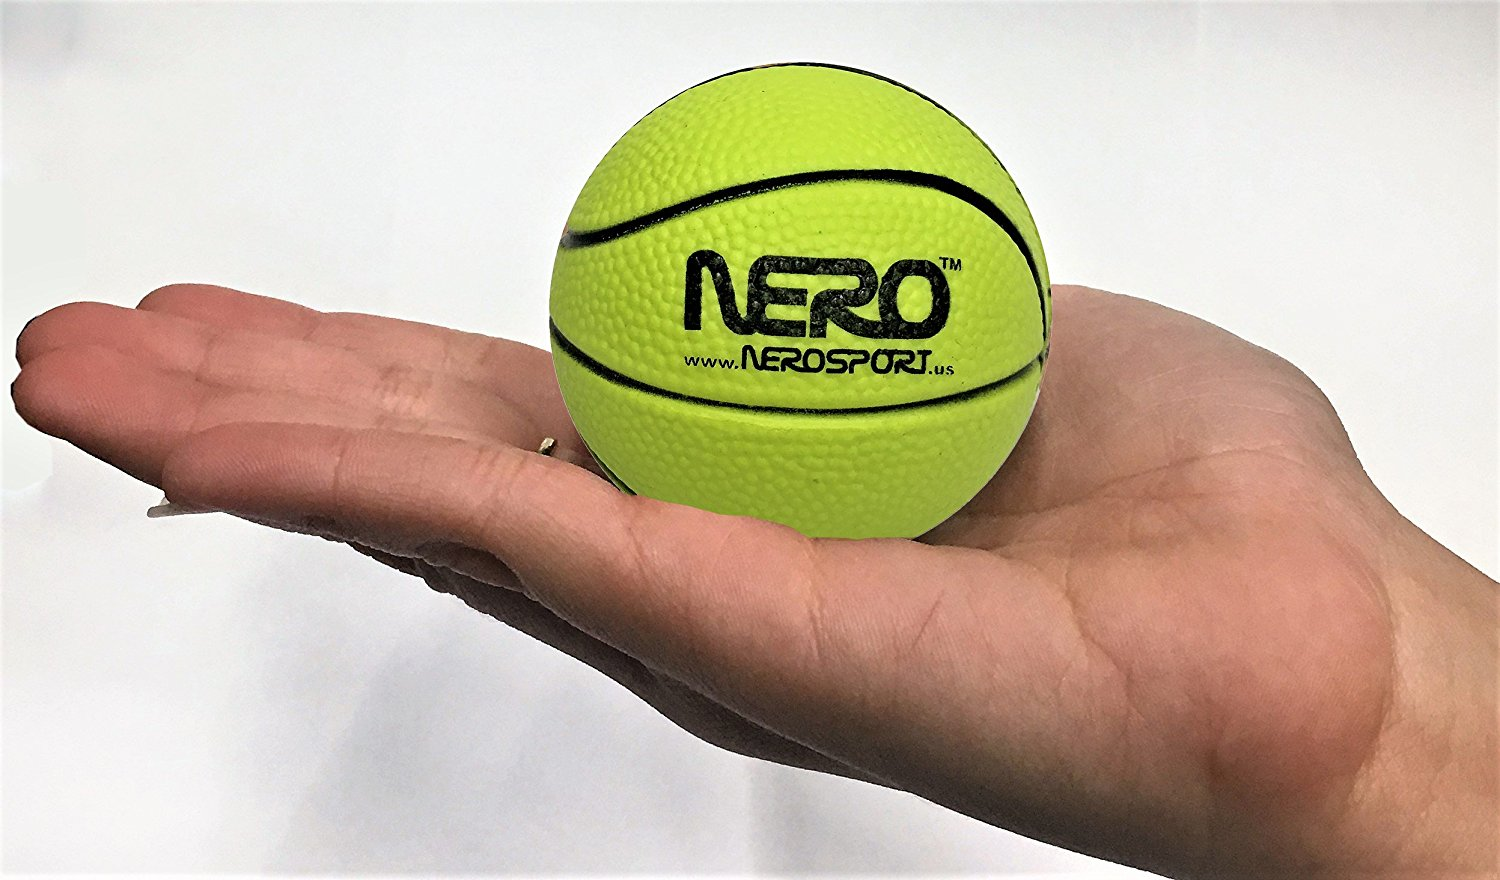 Nero NS-RS High Bounce Rubber Mini Basketball 2.5 inch Skills Development Toy Great For the Streets Playground Park Back Yard Playground Agility Ball Bulk Wholesale Price Birthdays Summer Ball Gifts